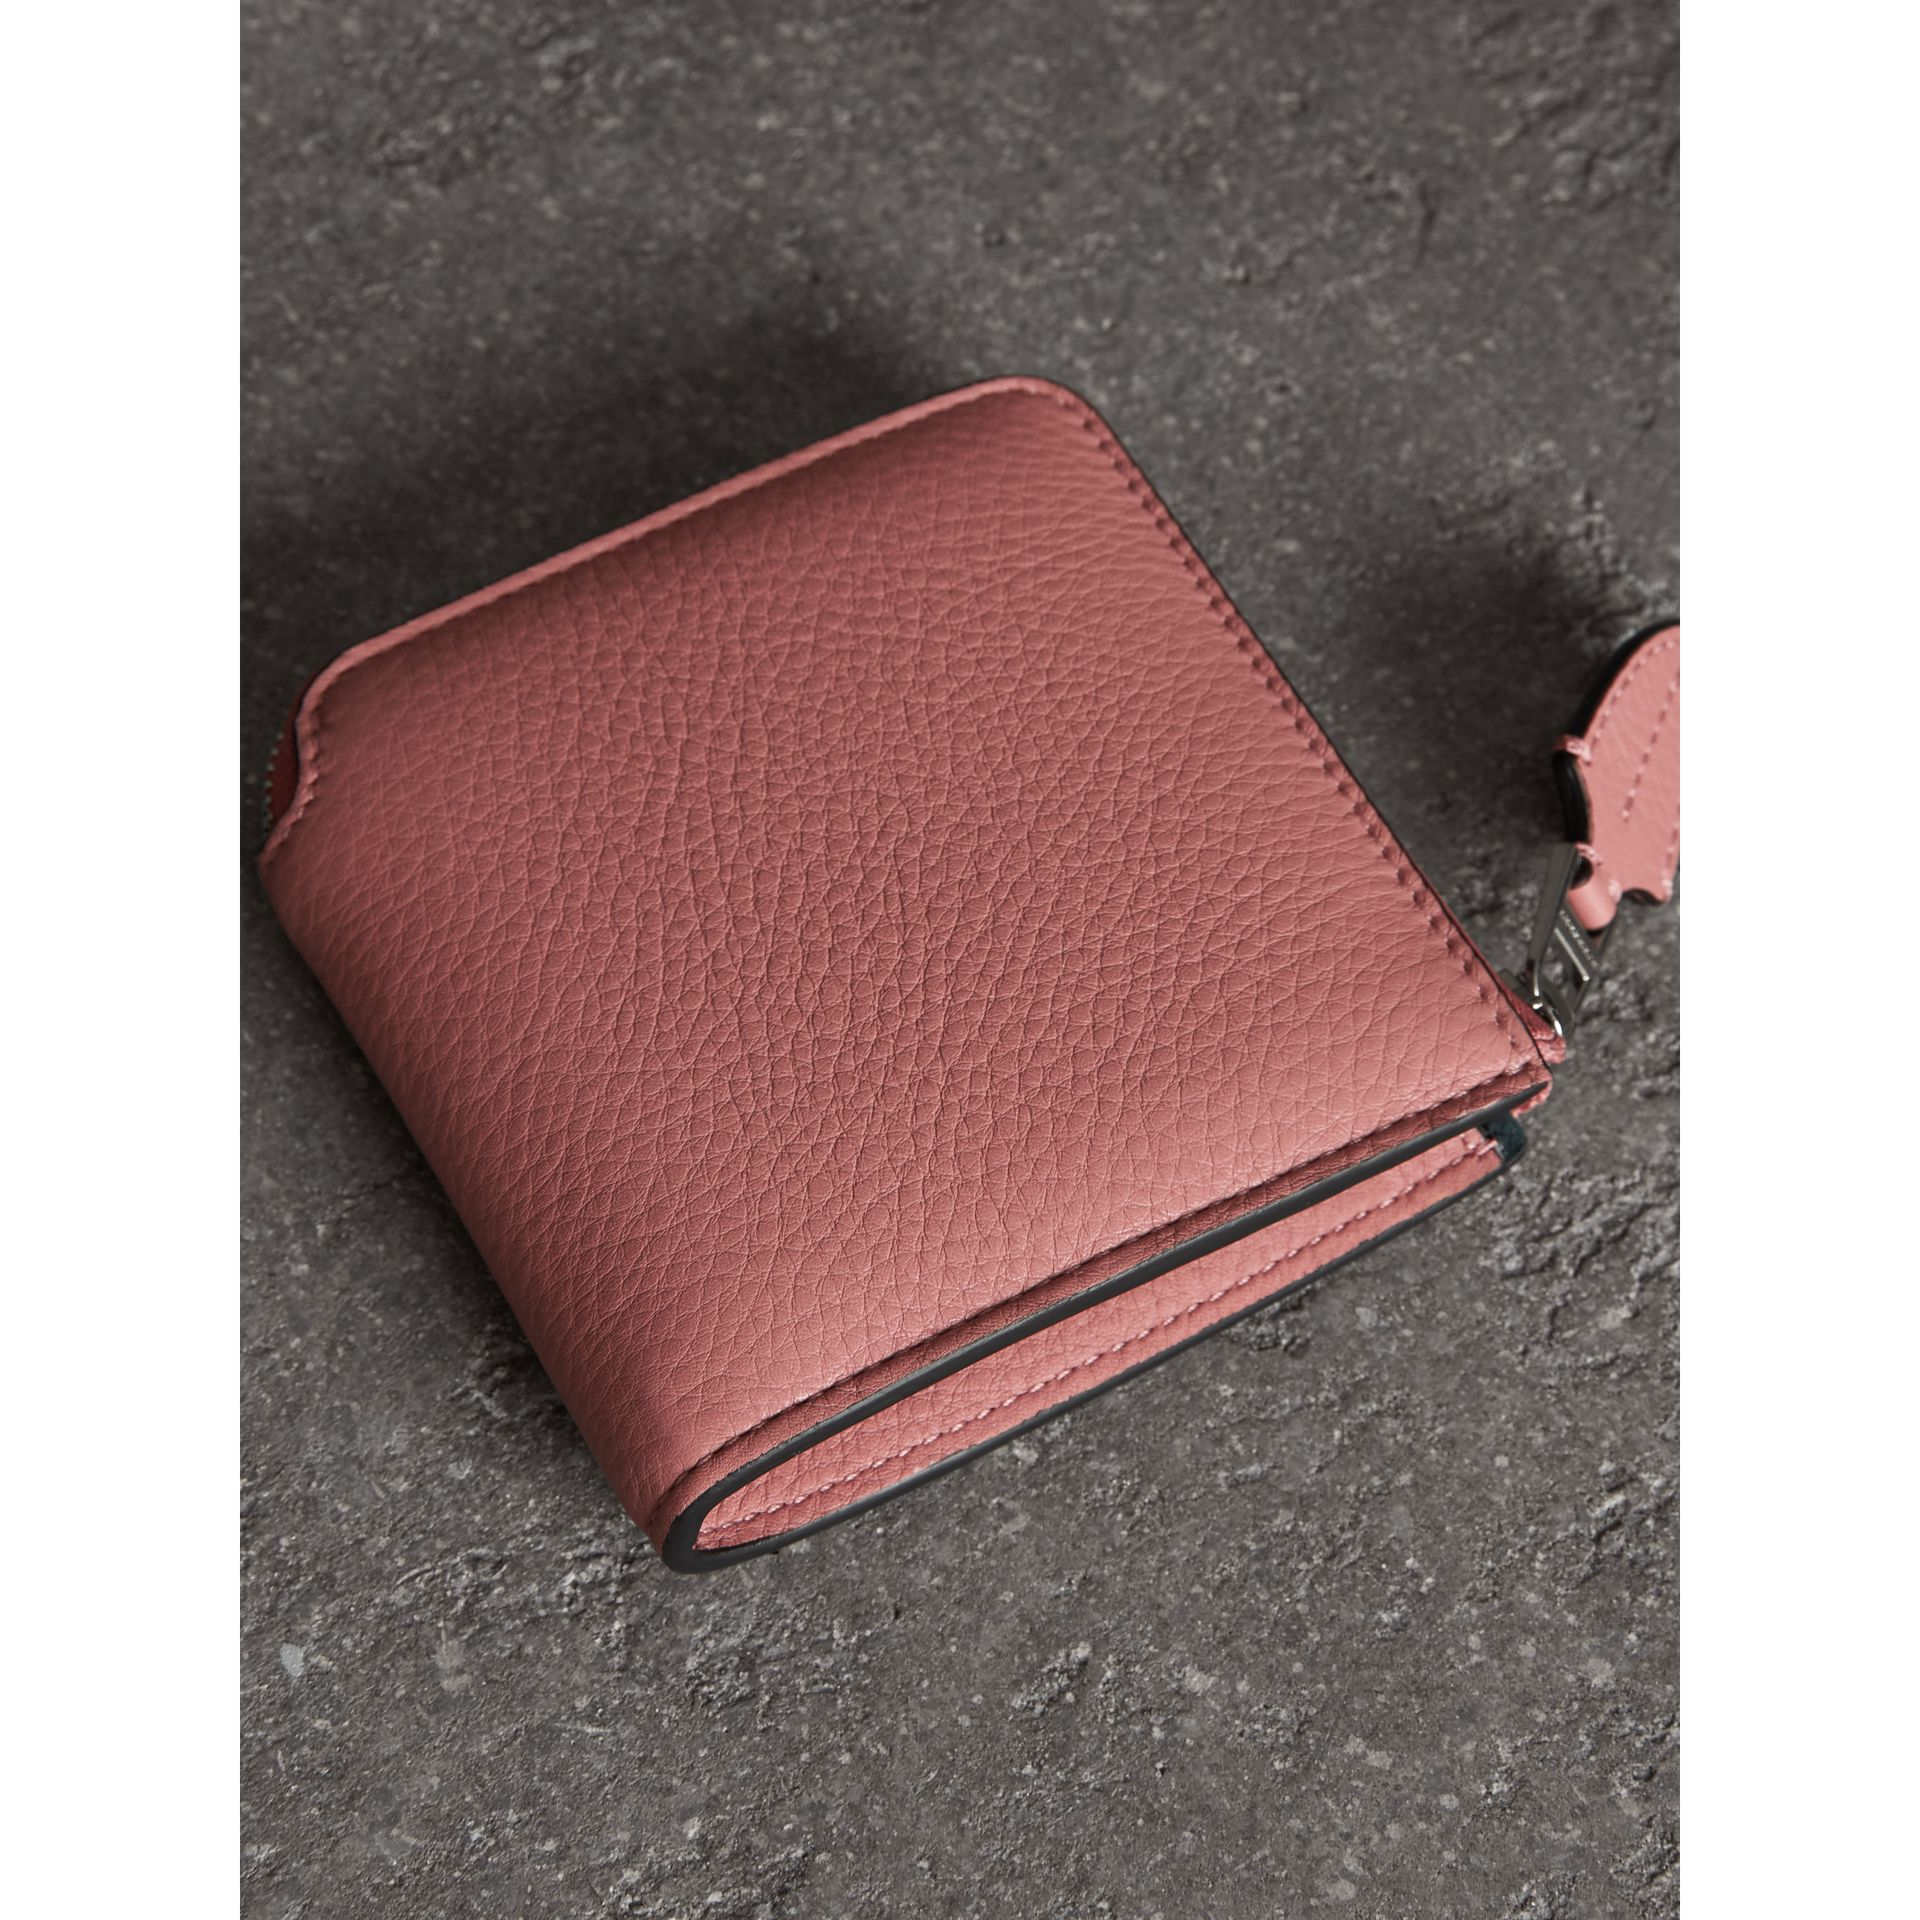 Grainy Leather Square Ziparound Wallet in Dusty Rose - Women | Burberry Singapore - gallery image 2